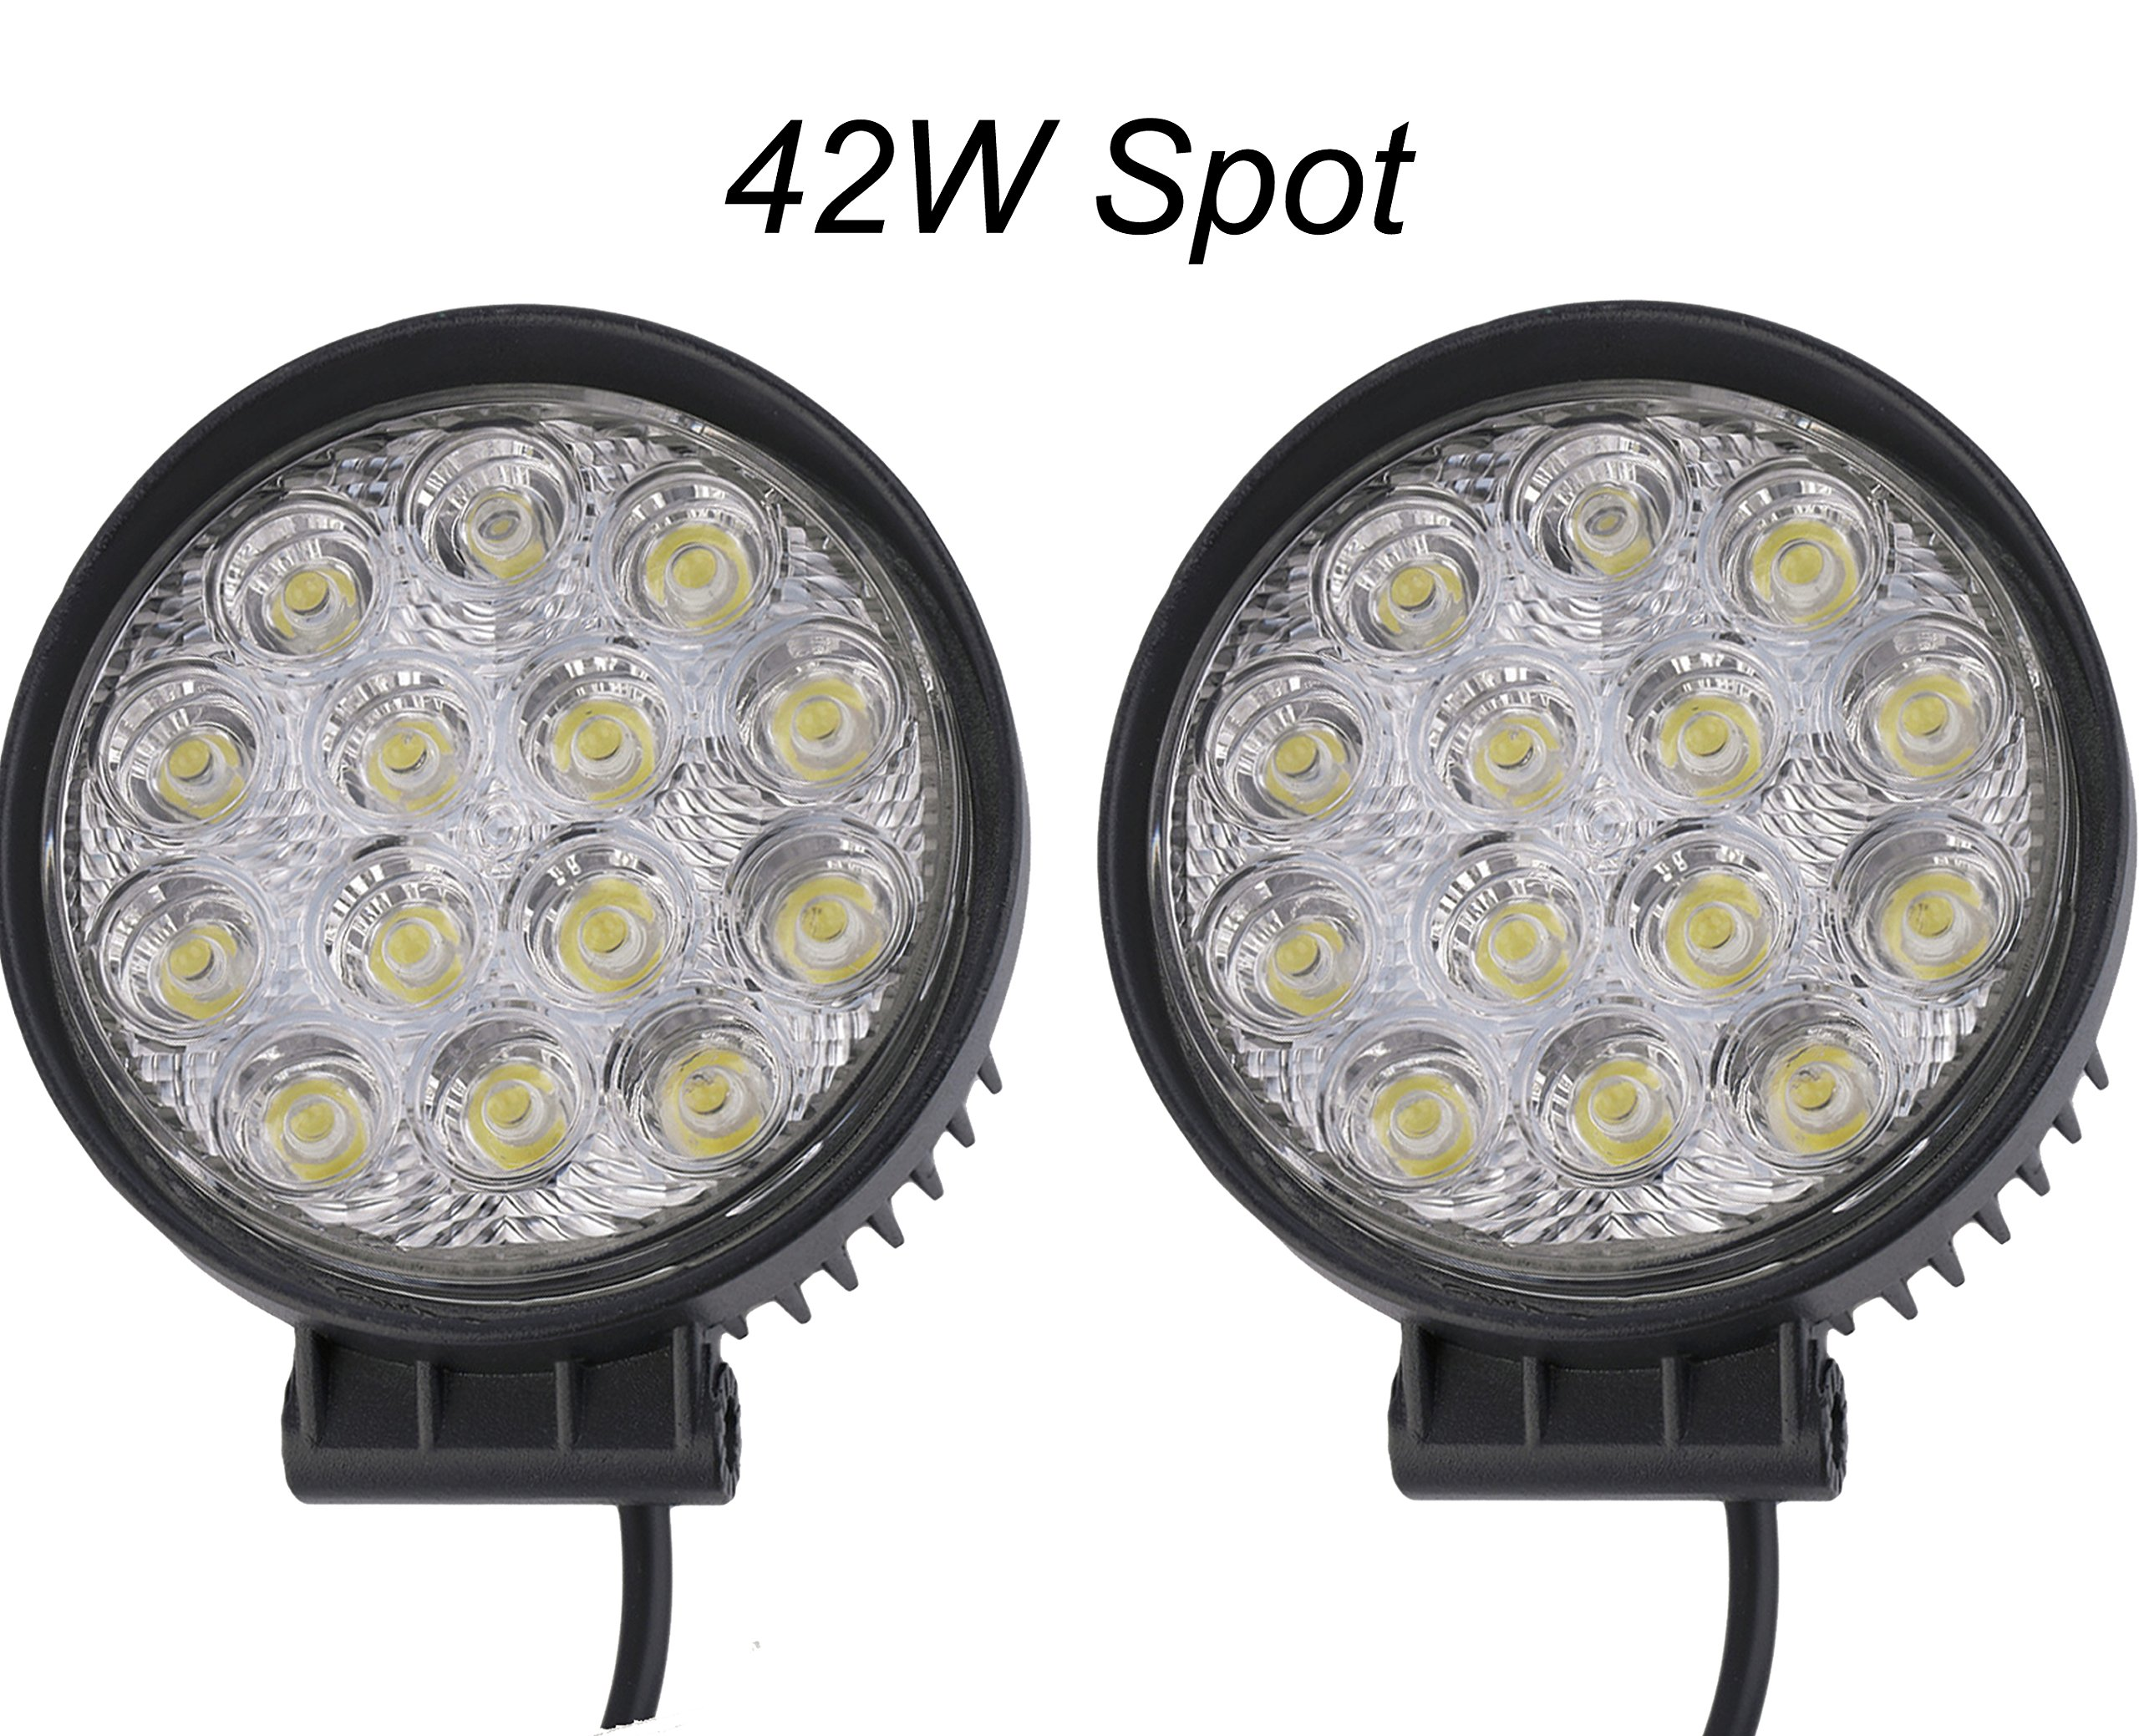 Find 4x4 Led Light Bar Deals 18 Adult Webcam Jobs Leg Wiring Harness Include Switch Kit Support 120w Get Quotations Ourbest Fog Work Lights For Trucks Driving Spot Beam Round 45